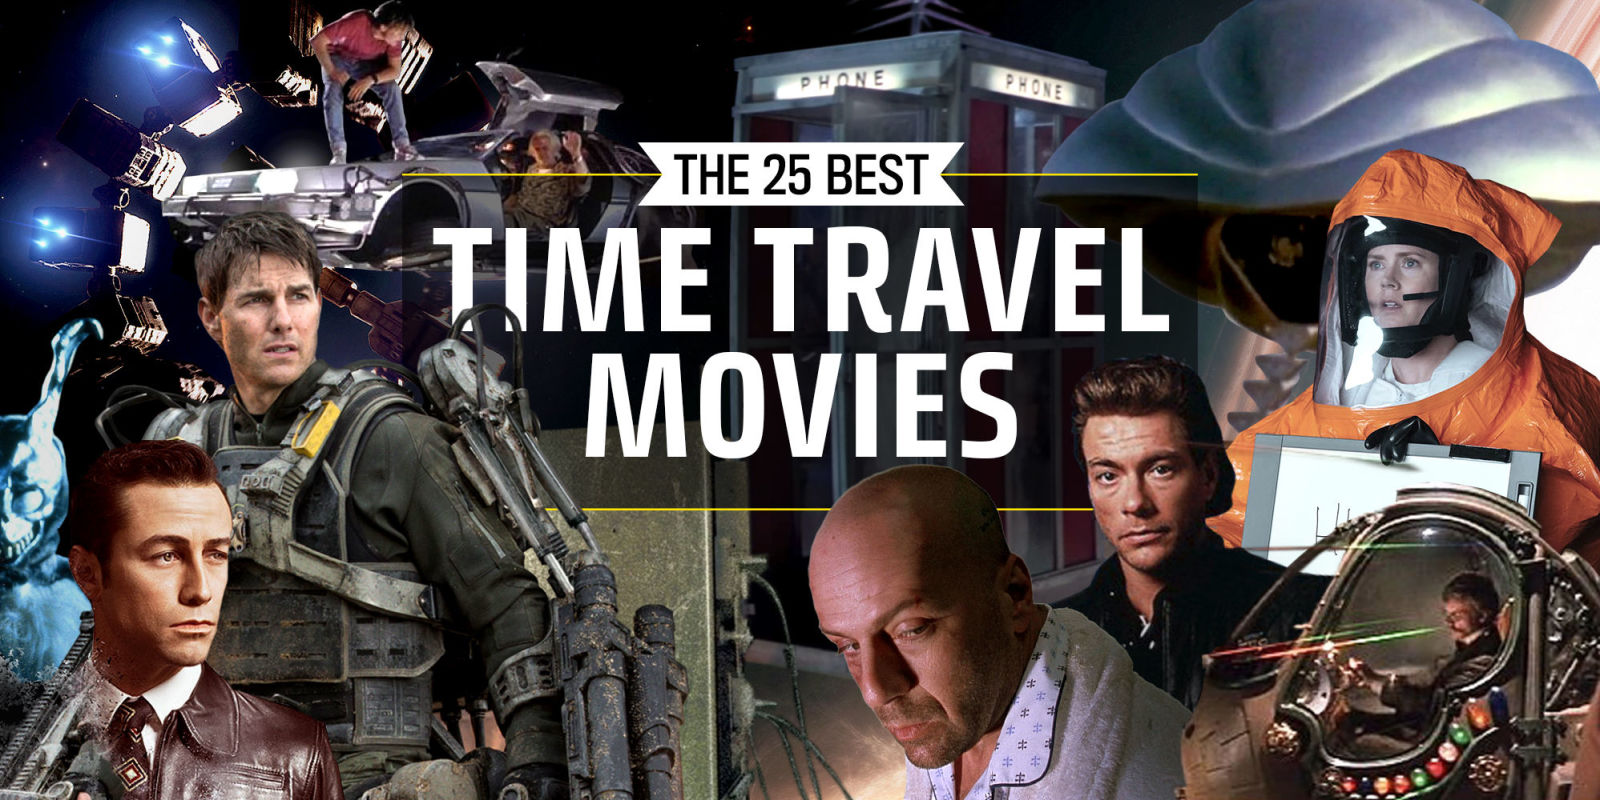 Time Travel Pics 25 Best Time Travel Movies Of All Time Greatest Sci Fi Time